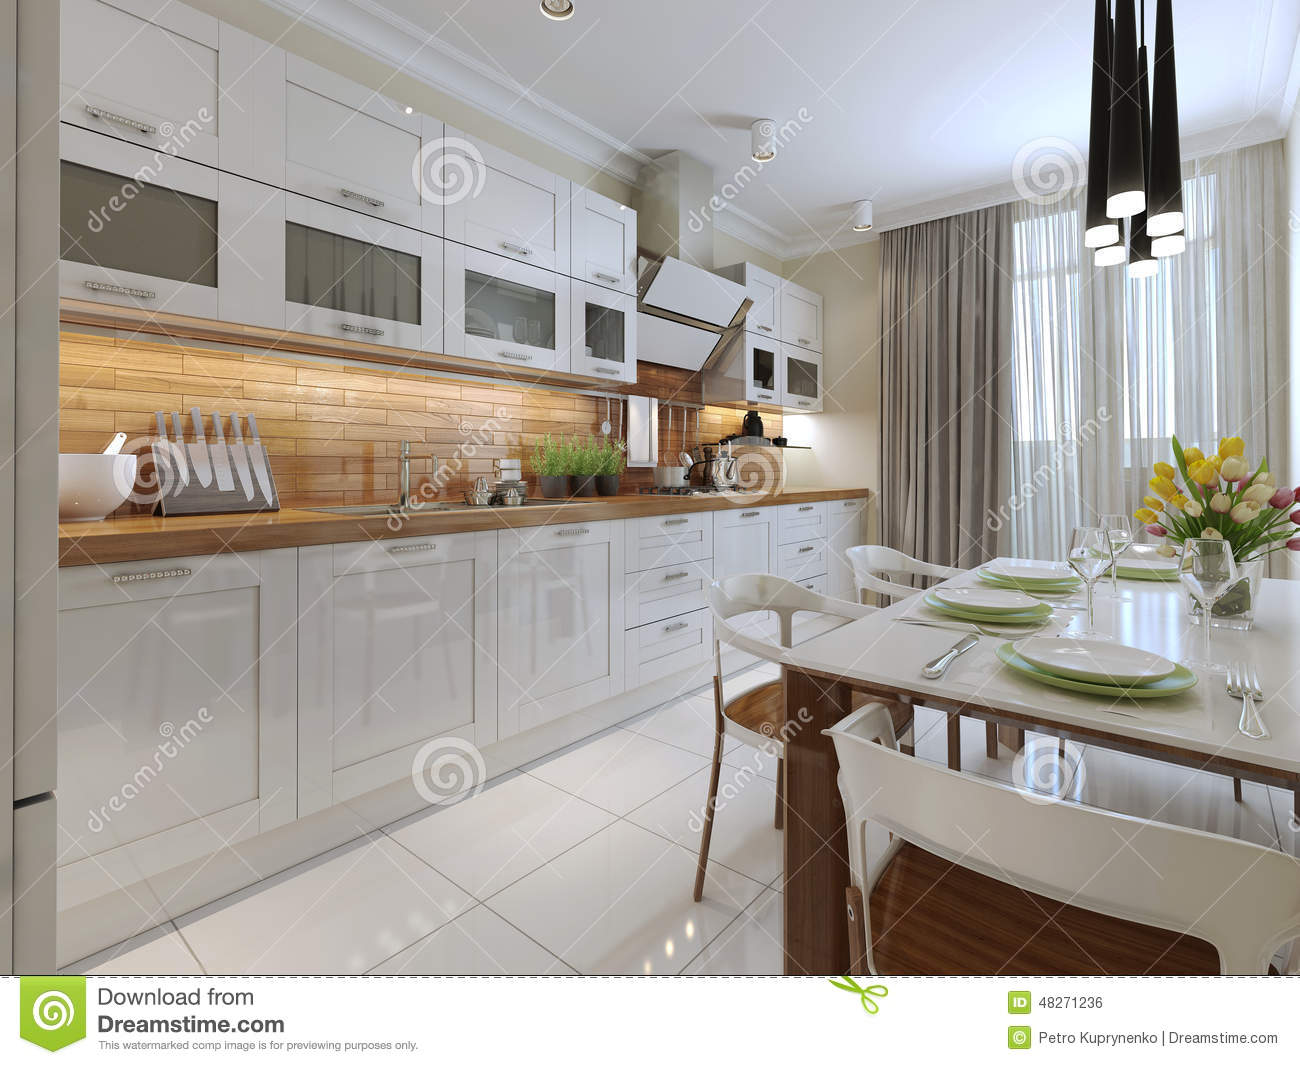 Stunning Cucina Stile Contemporaneo Ideas - Skilifts.us - skilifts.us